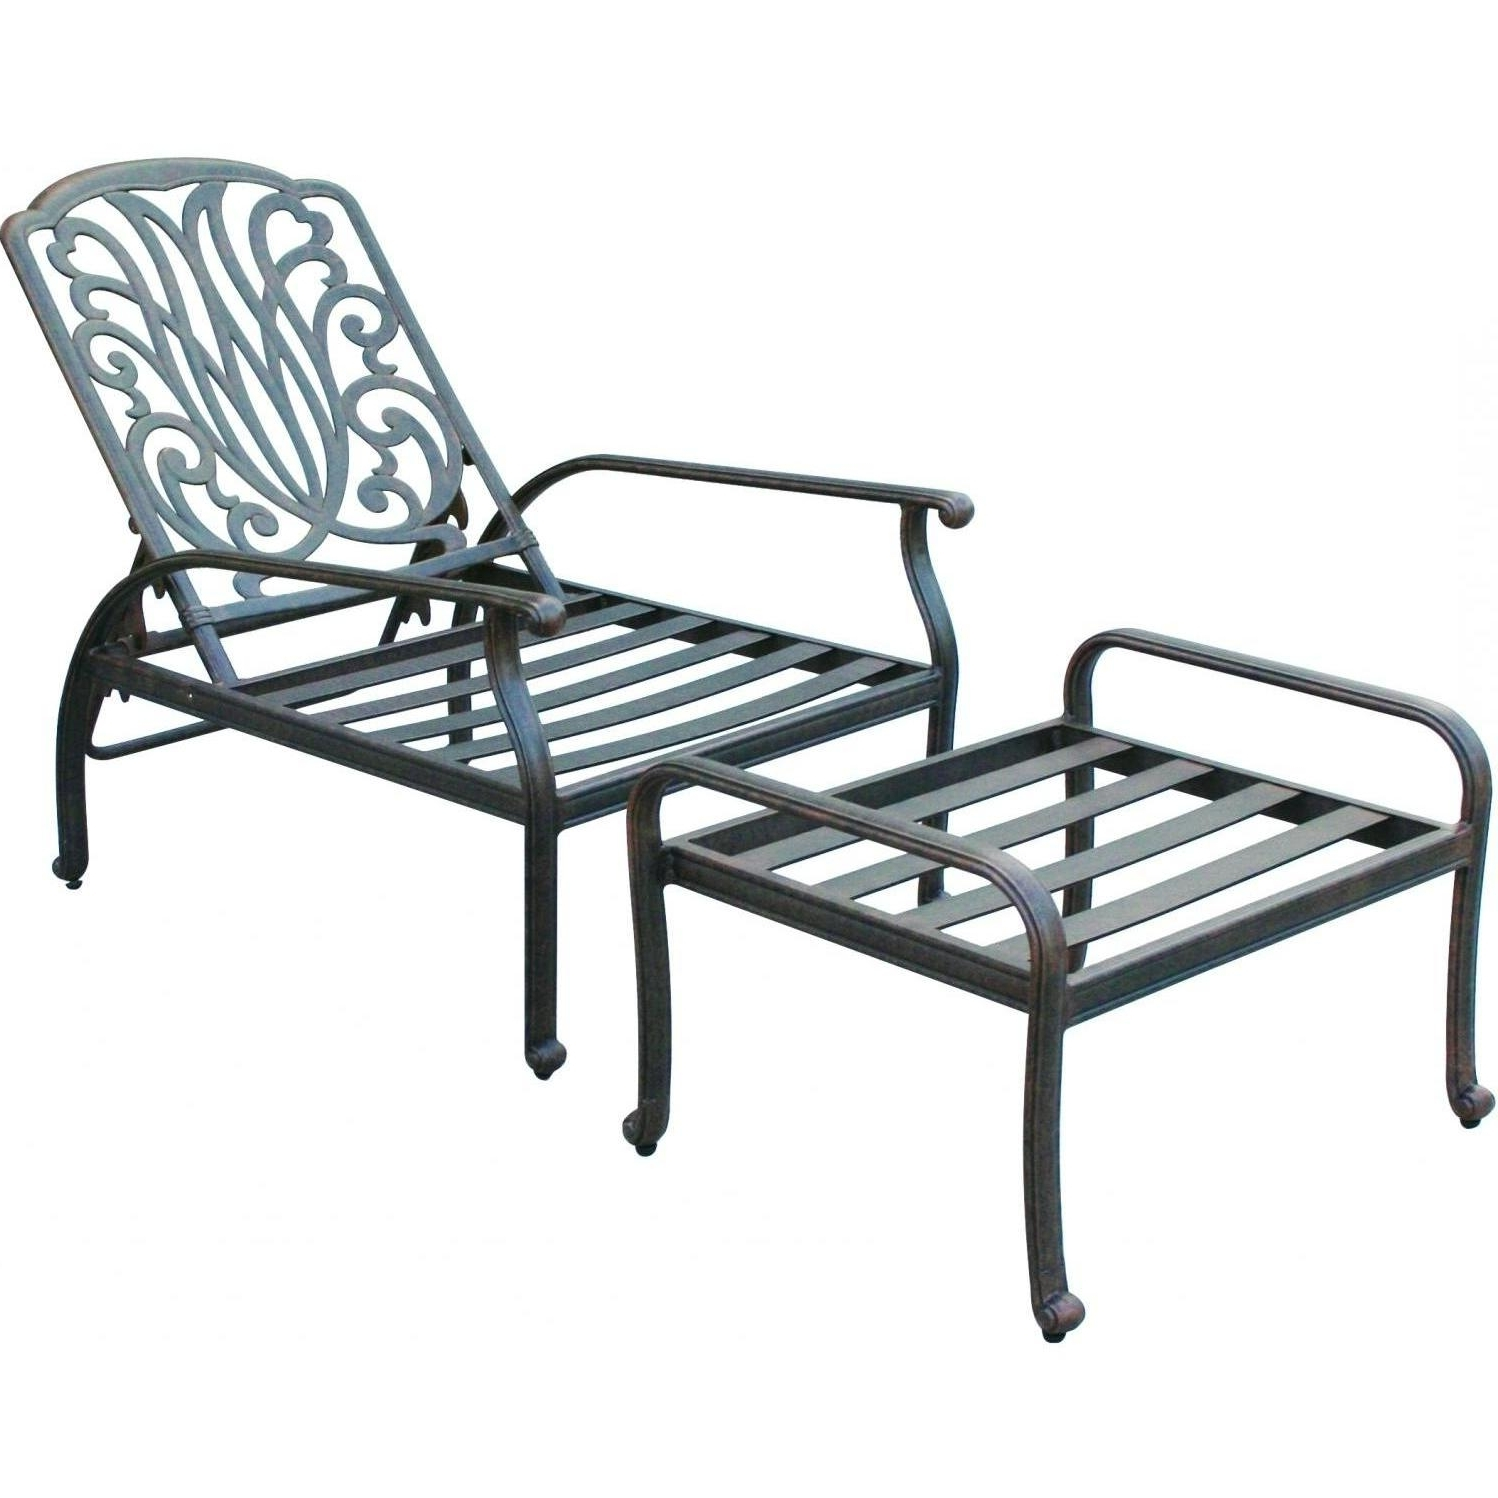 Chaise Lounge Chairs For Backyard Regarding Best And Newest Convertible Chair : Chairs Sale Double Lawn Chair Patio Chaise (View 6 of 15)